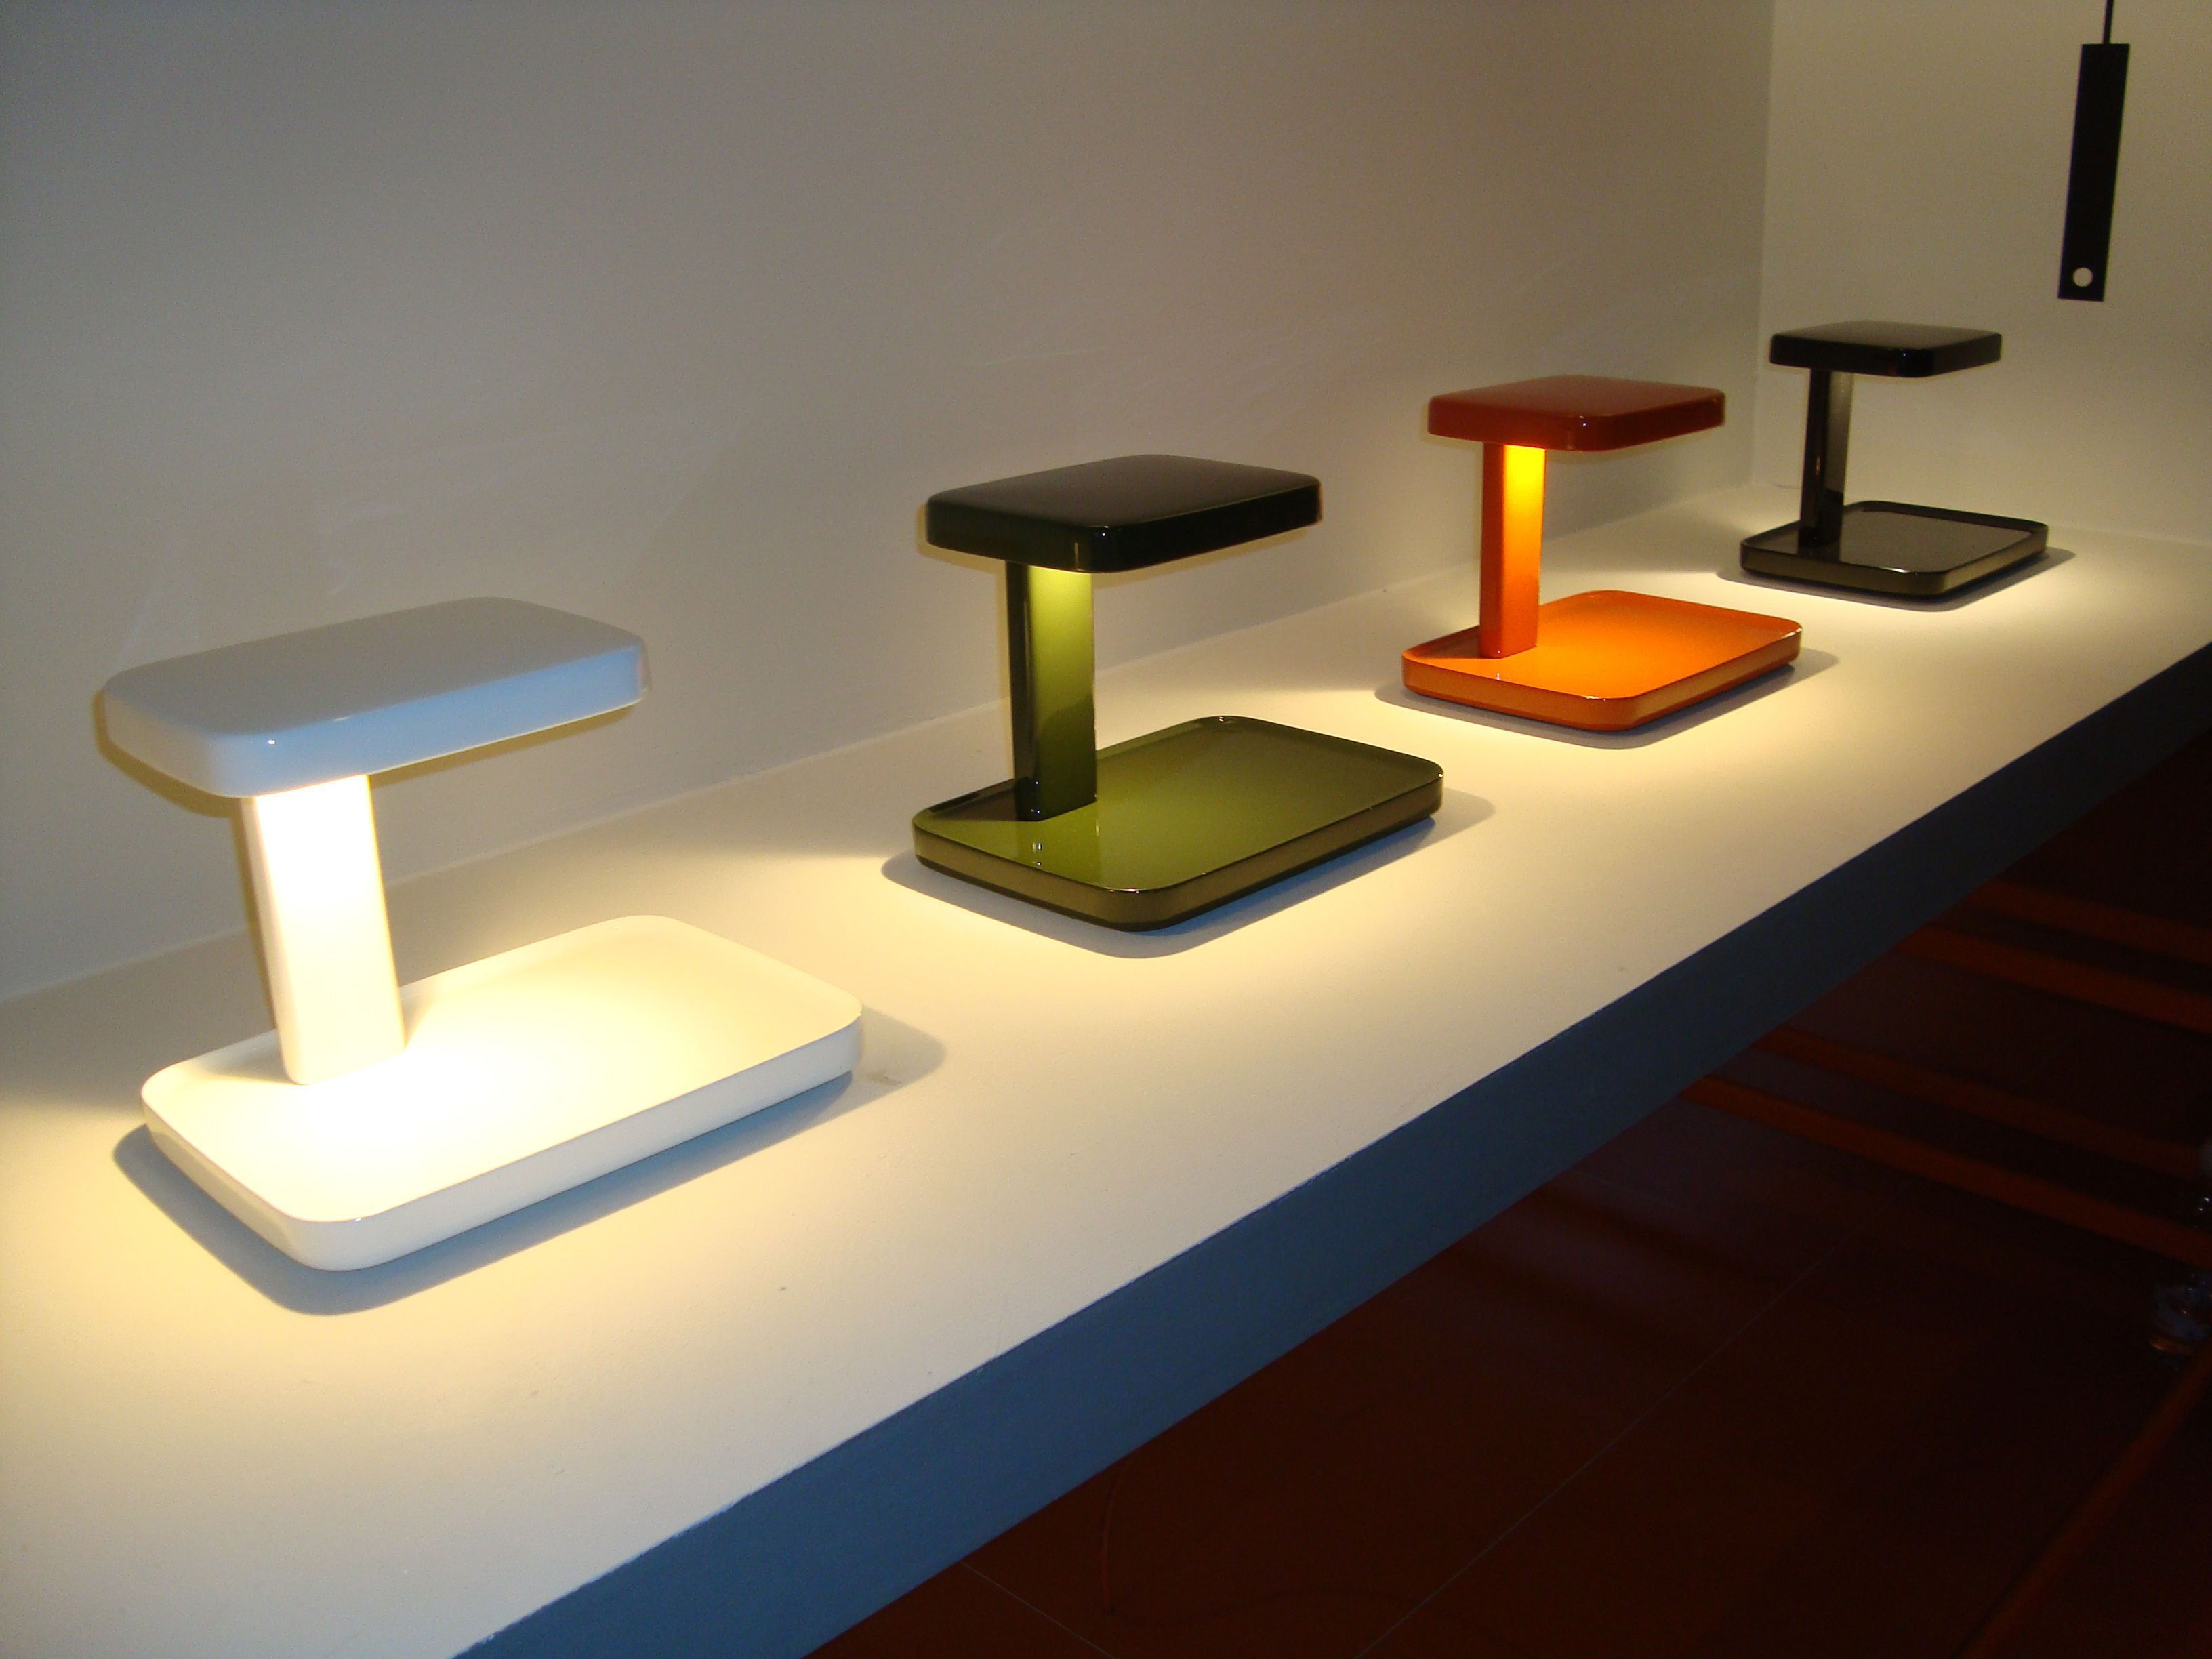 The Piani Table Lamp Design By Ronan And Erwan Bouroullec For The